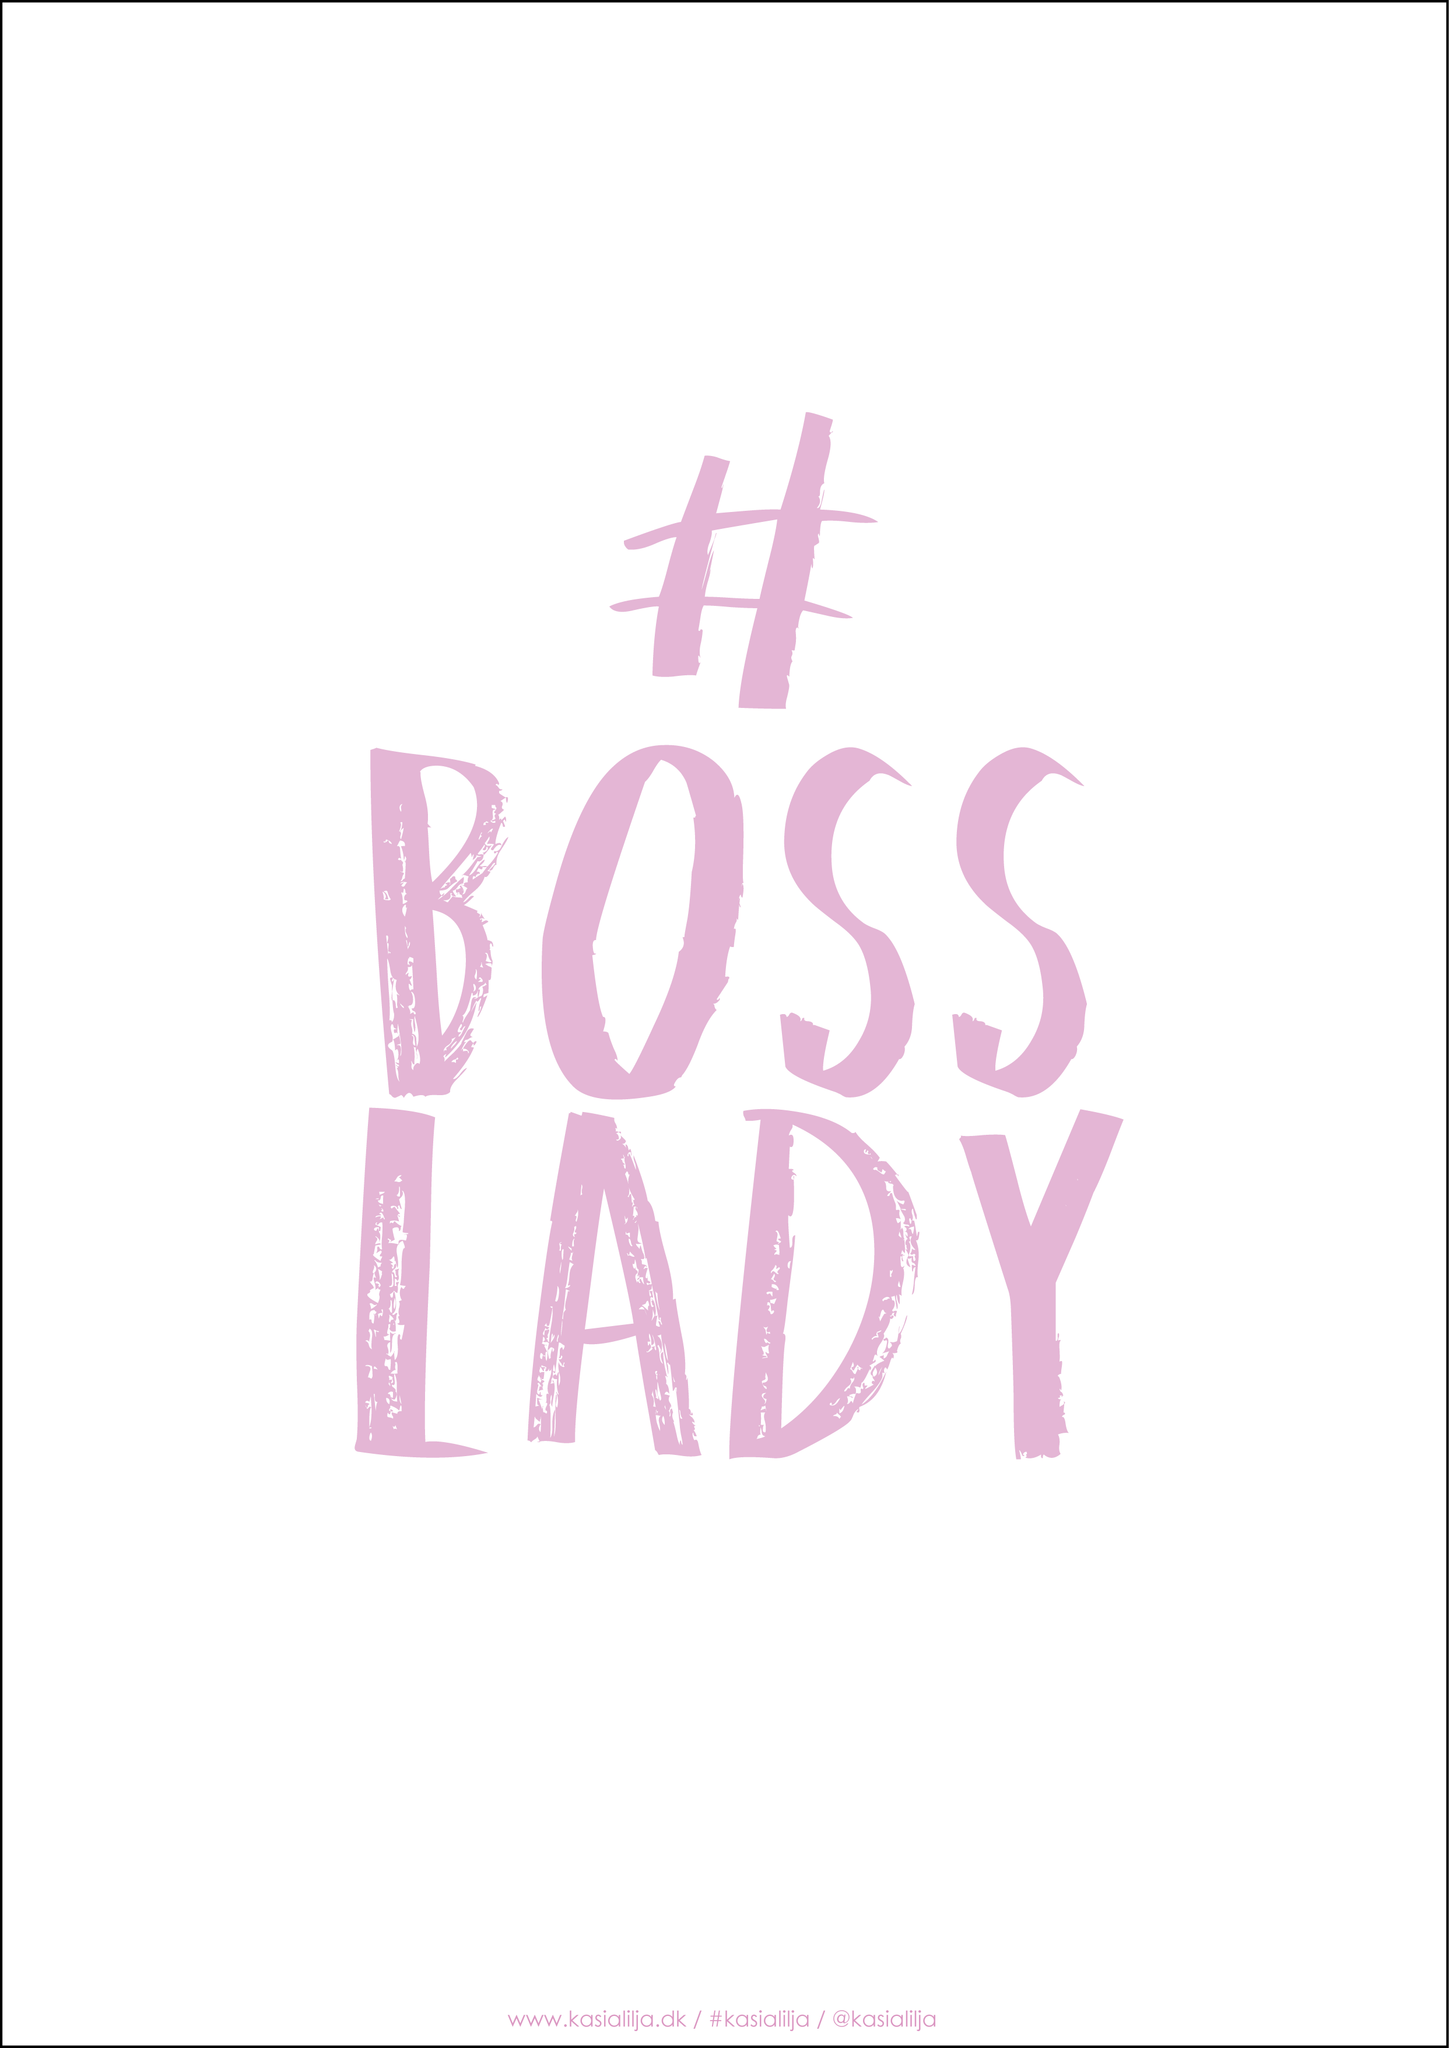 BOSS LADY (Pink) - Card / Poster